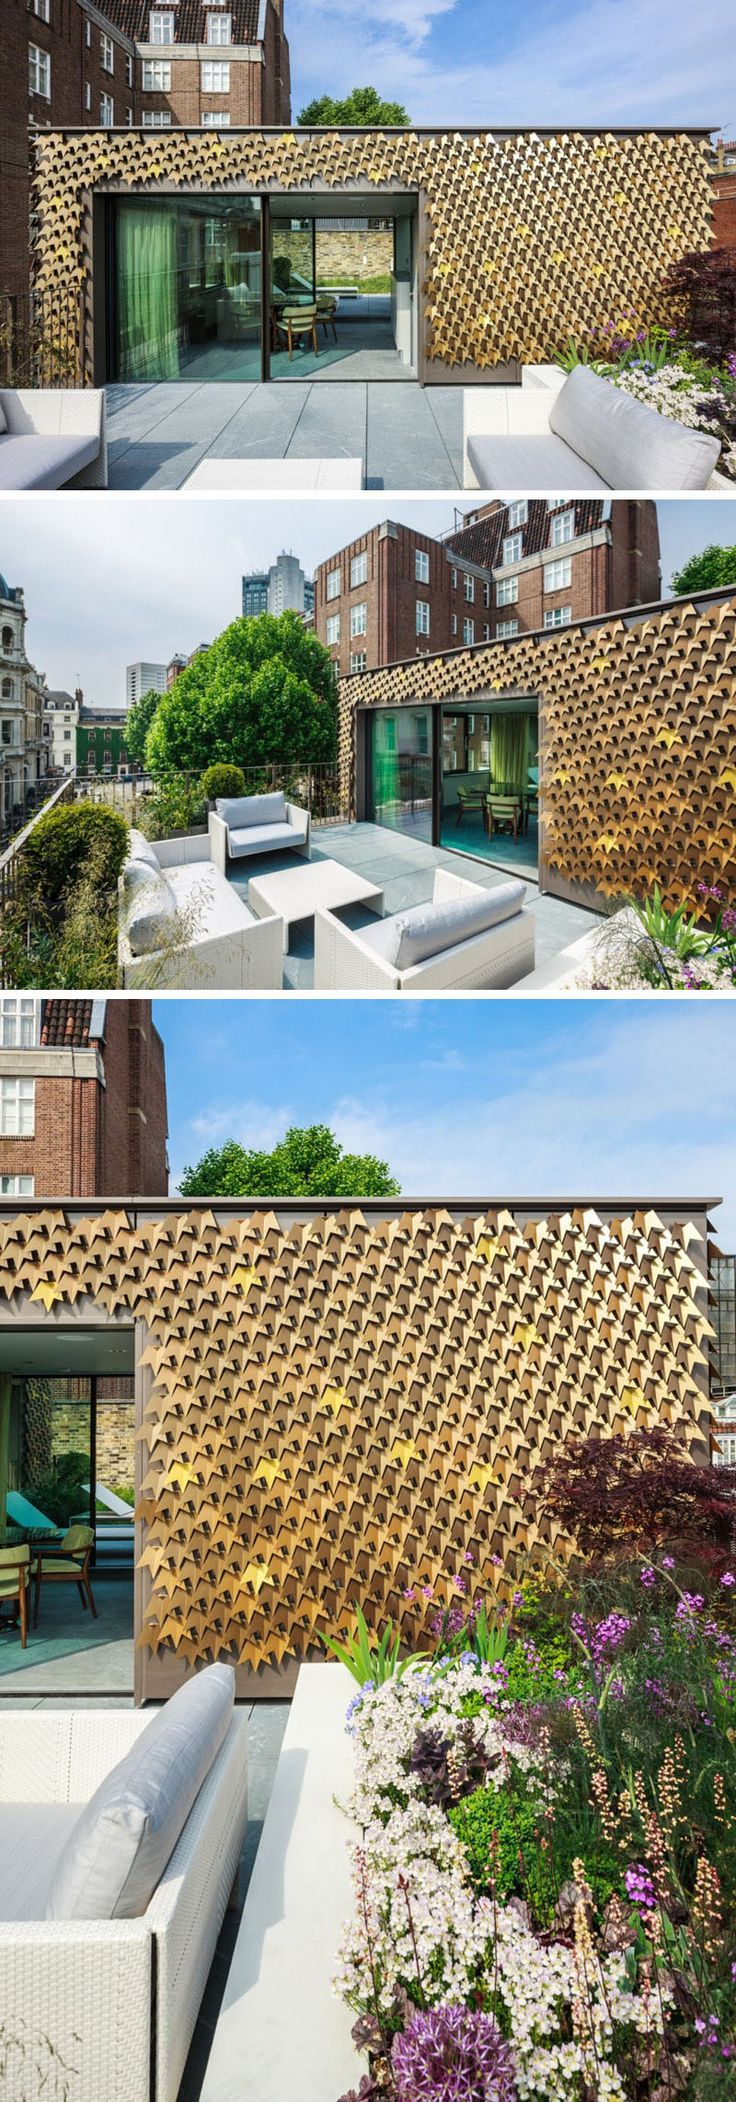 Façade Cladding Metal Ivy Leaves Roof Terrace    Article Ideas / Terrace  Ideas For Articles On Best Of Modern Design   So Many Good Things!